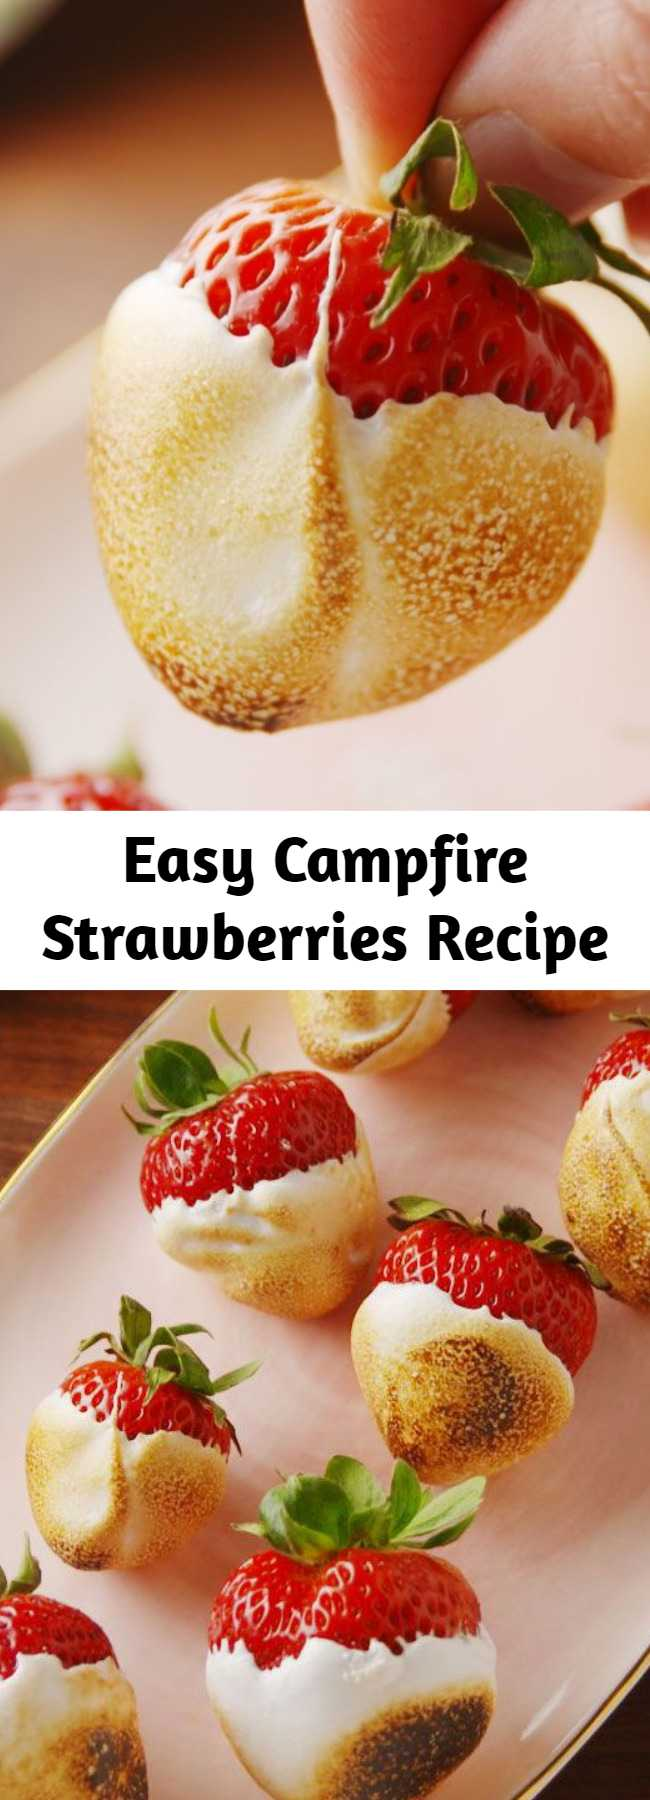 Easy Campfire Strawberries Recipe - If you're obsessed with s'mores, one reason you love them is for the toasted marshmallow flavor. These strawberries have that and so much more. They're dunked in melty marshmallow fluff, then torched over a campfire. They're healthy cuz they're fruit, right?! Check out this super easy for the best campfire strawberries.